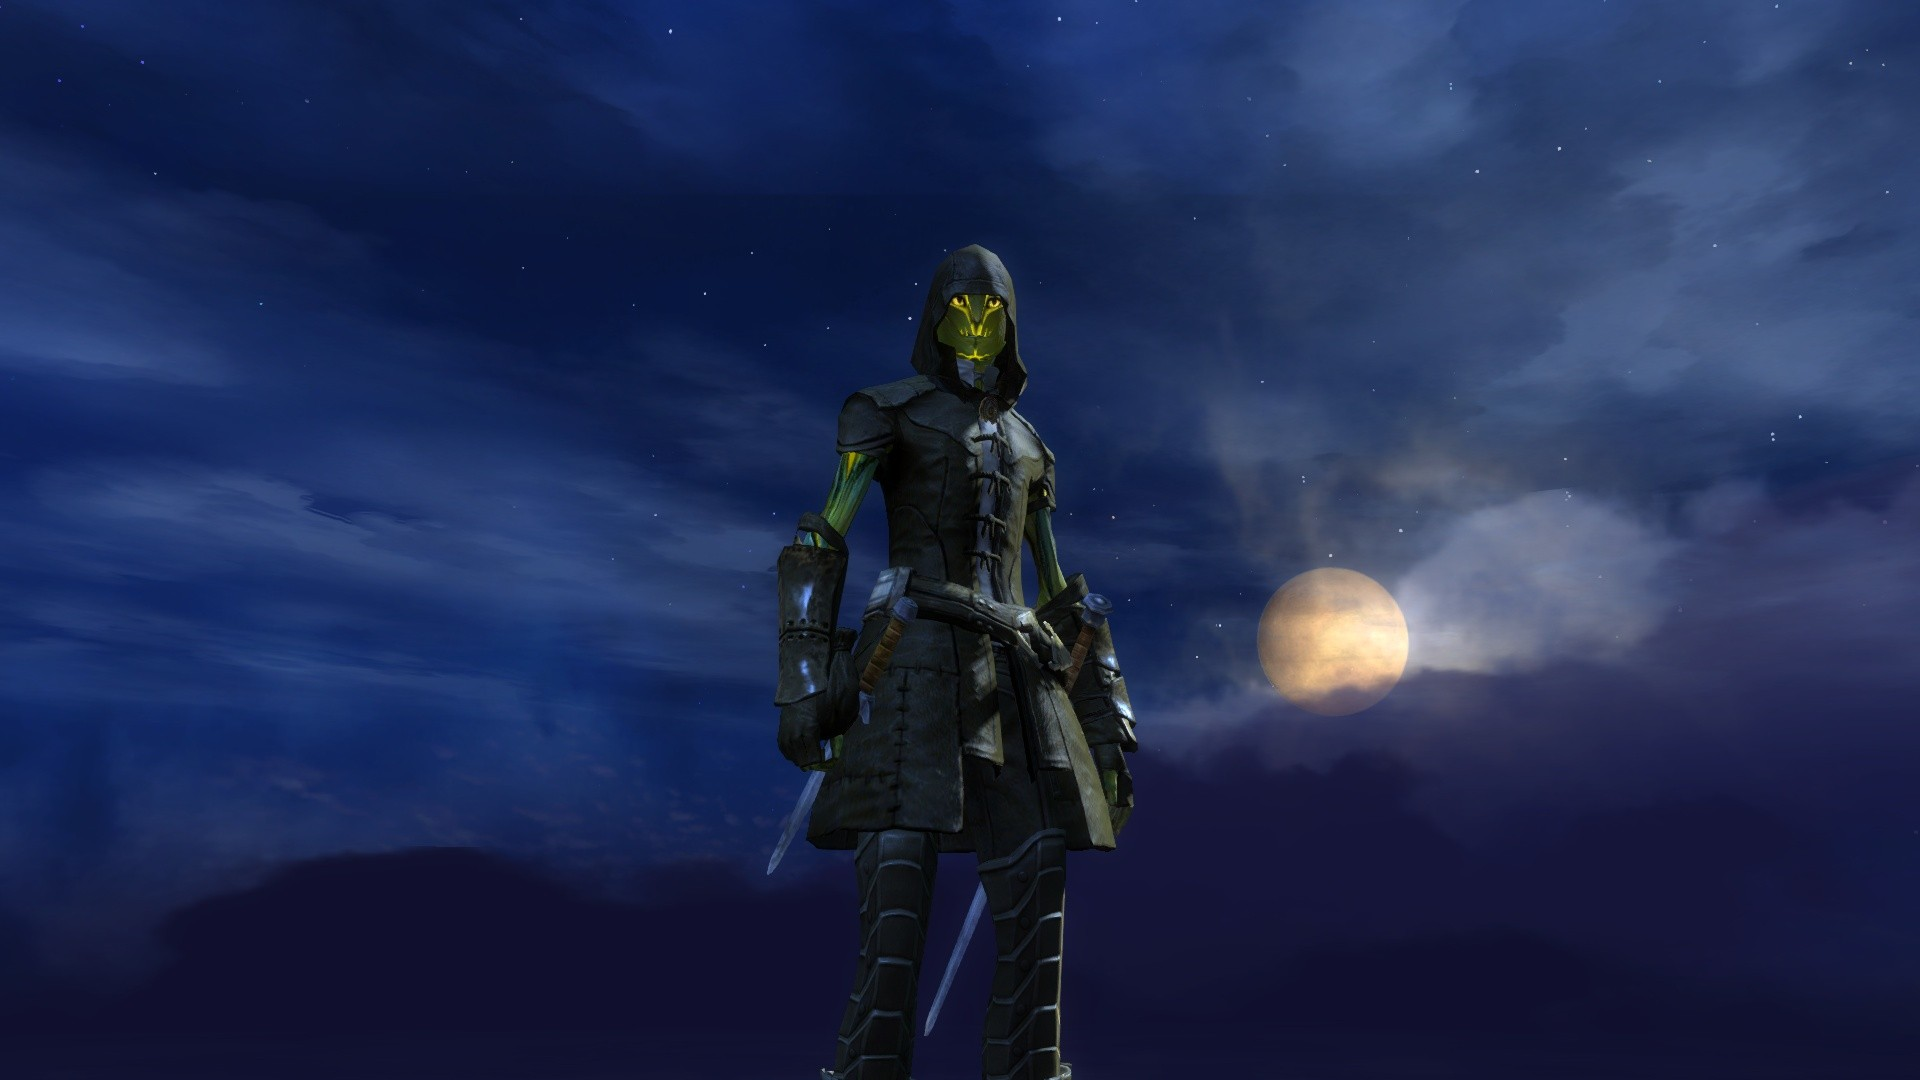 GW2-Thief of the night